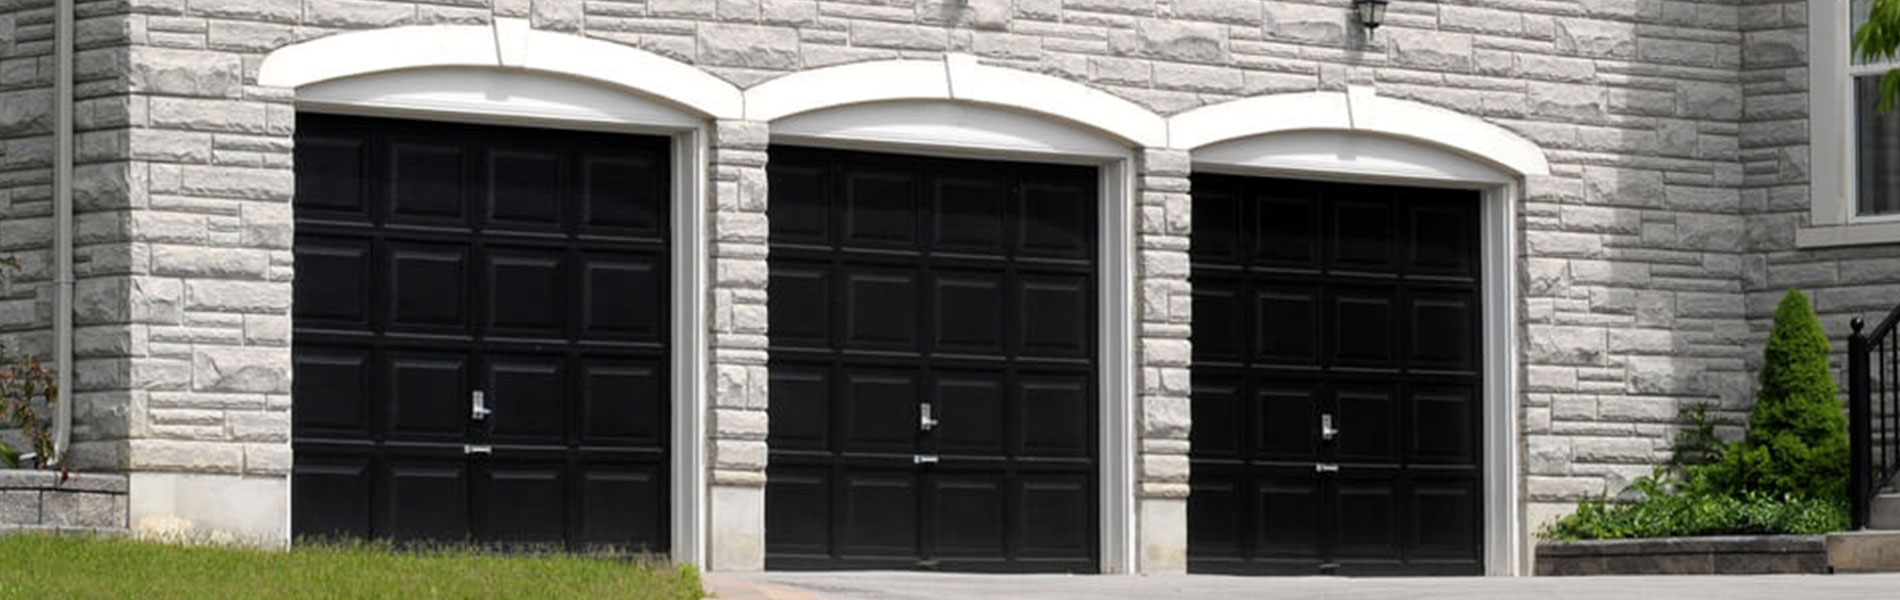 Neighborhood Garage Door Service, Los Angeles, CA 323-489-4039